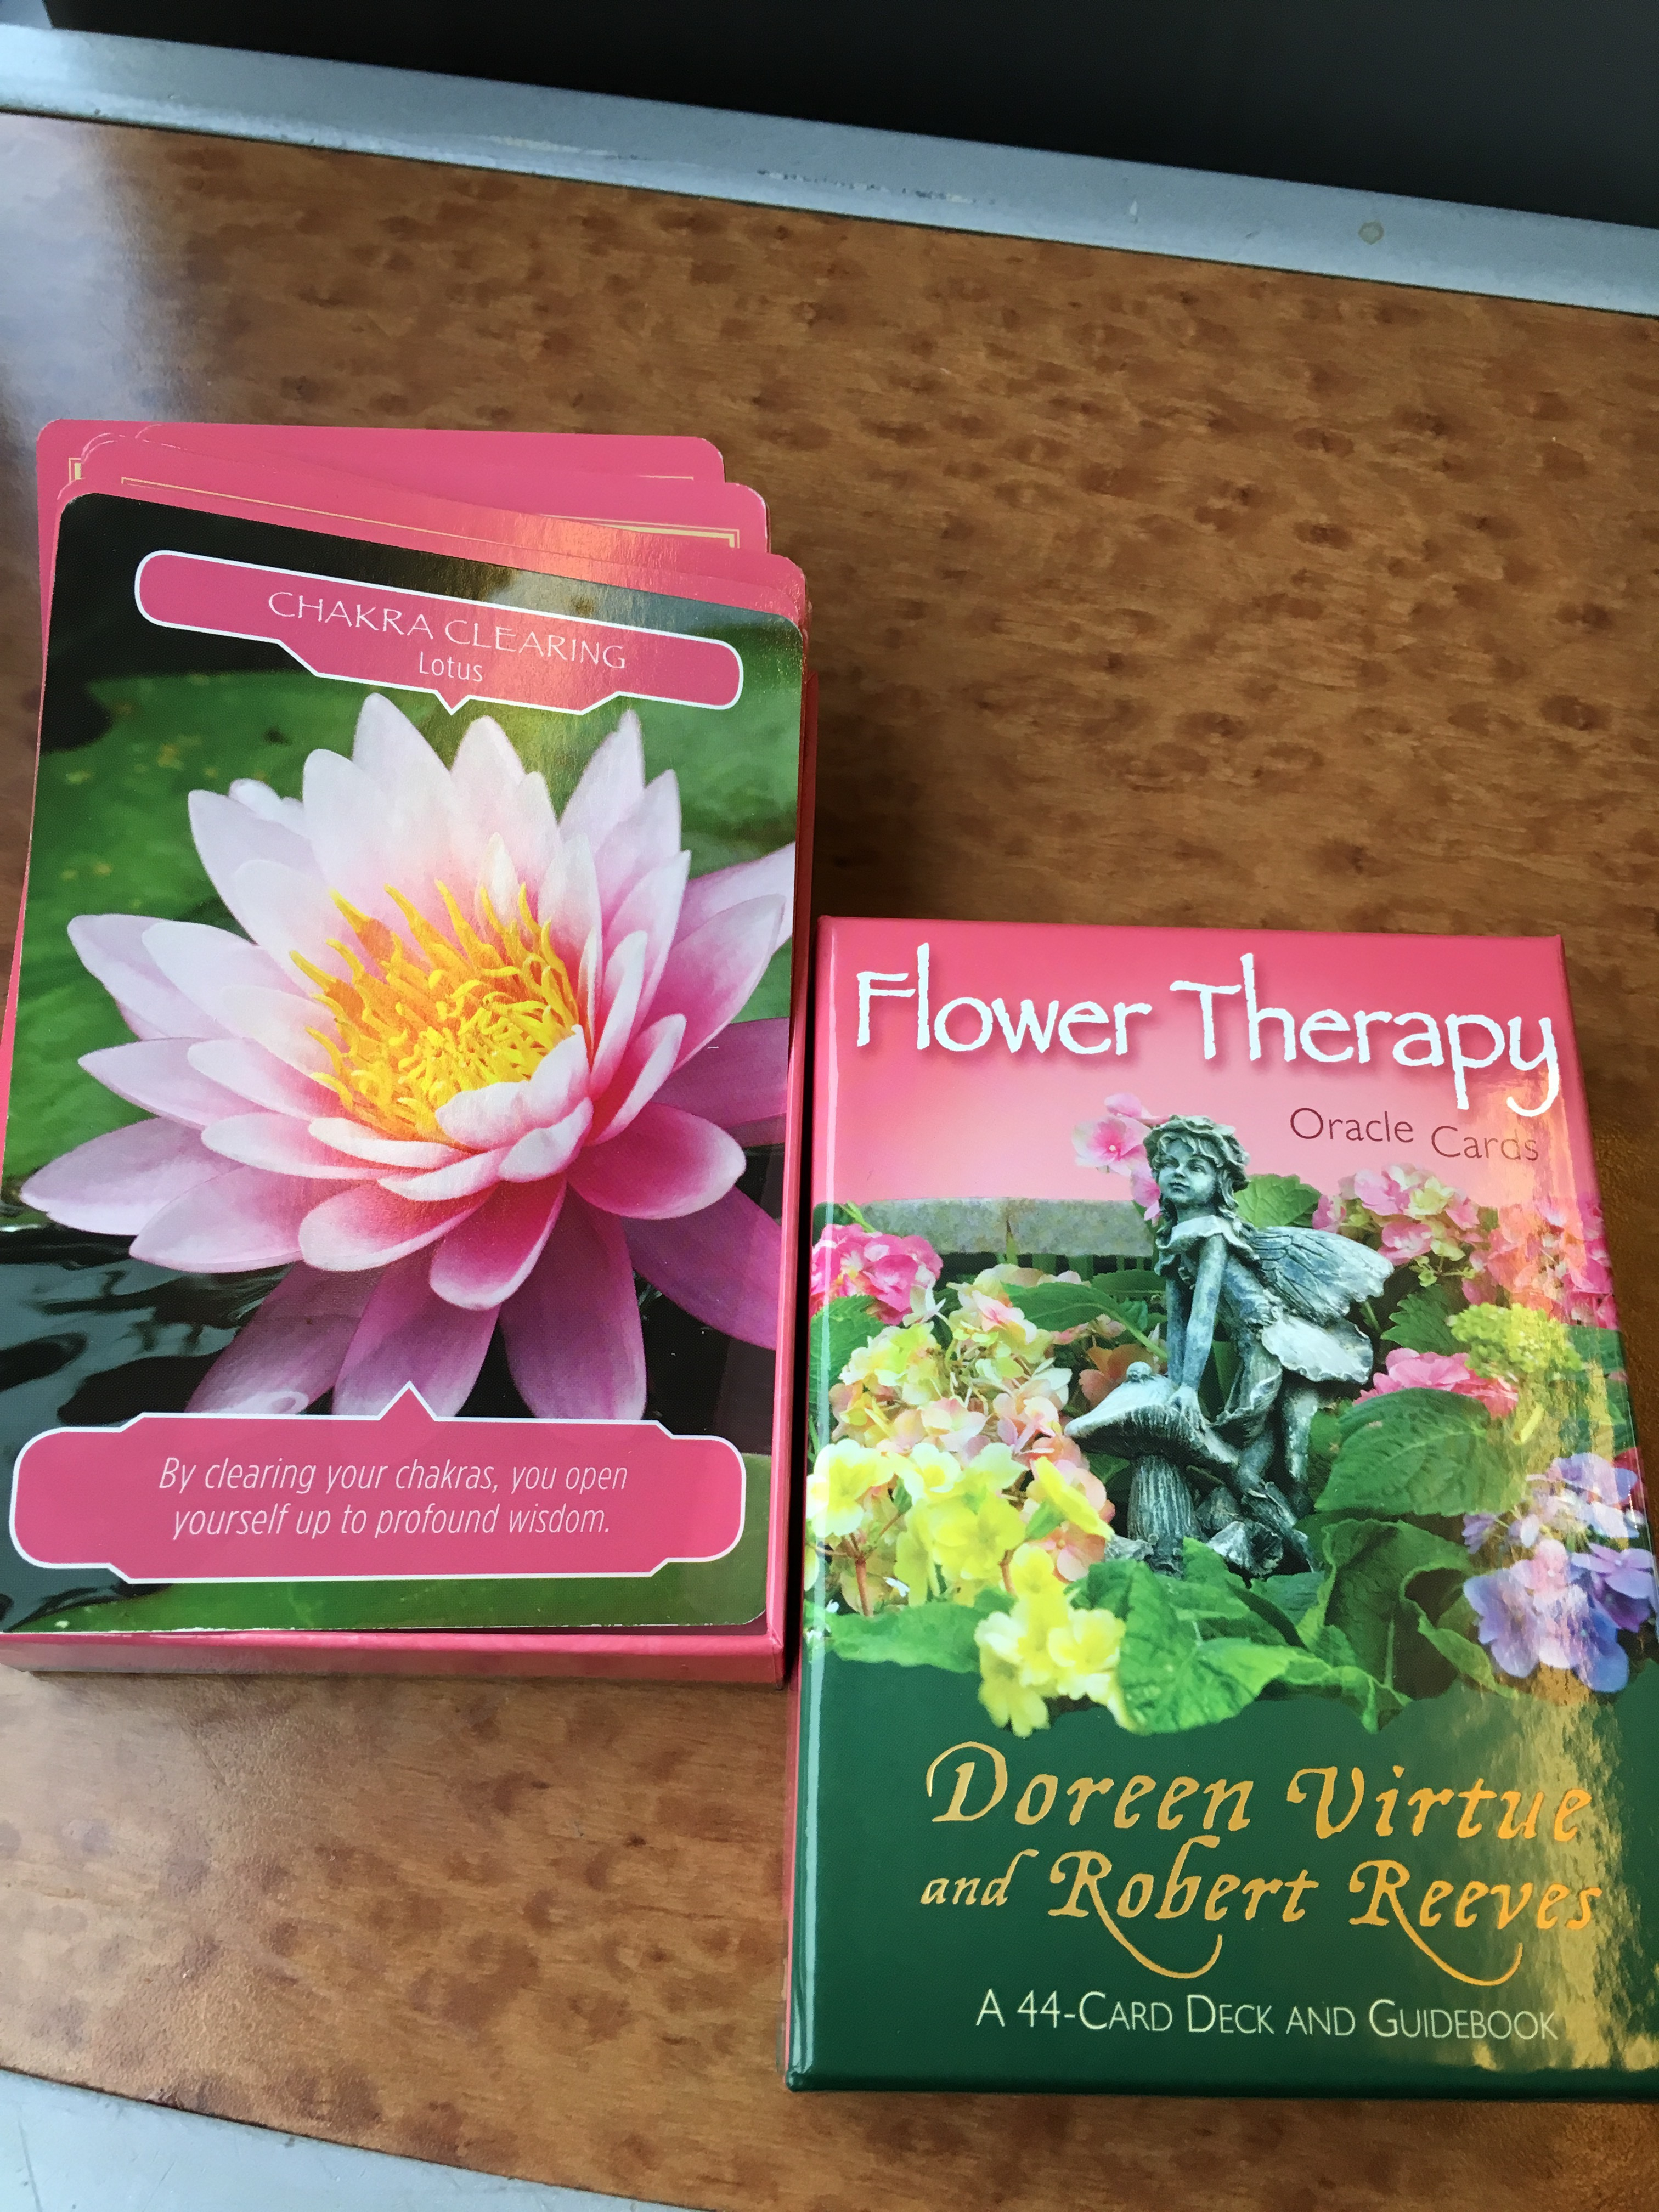 From the Flower Therapy Oracle Deck by Doreen Virtue and Robert Reeves